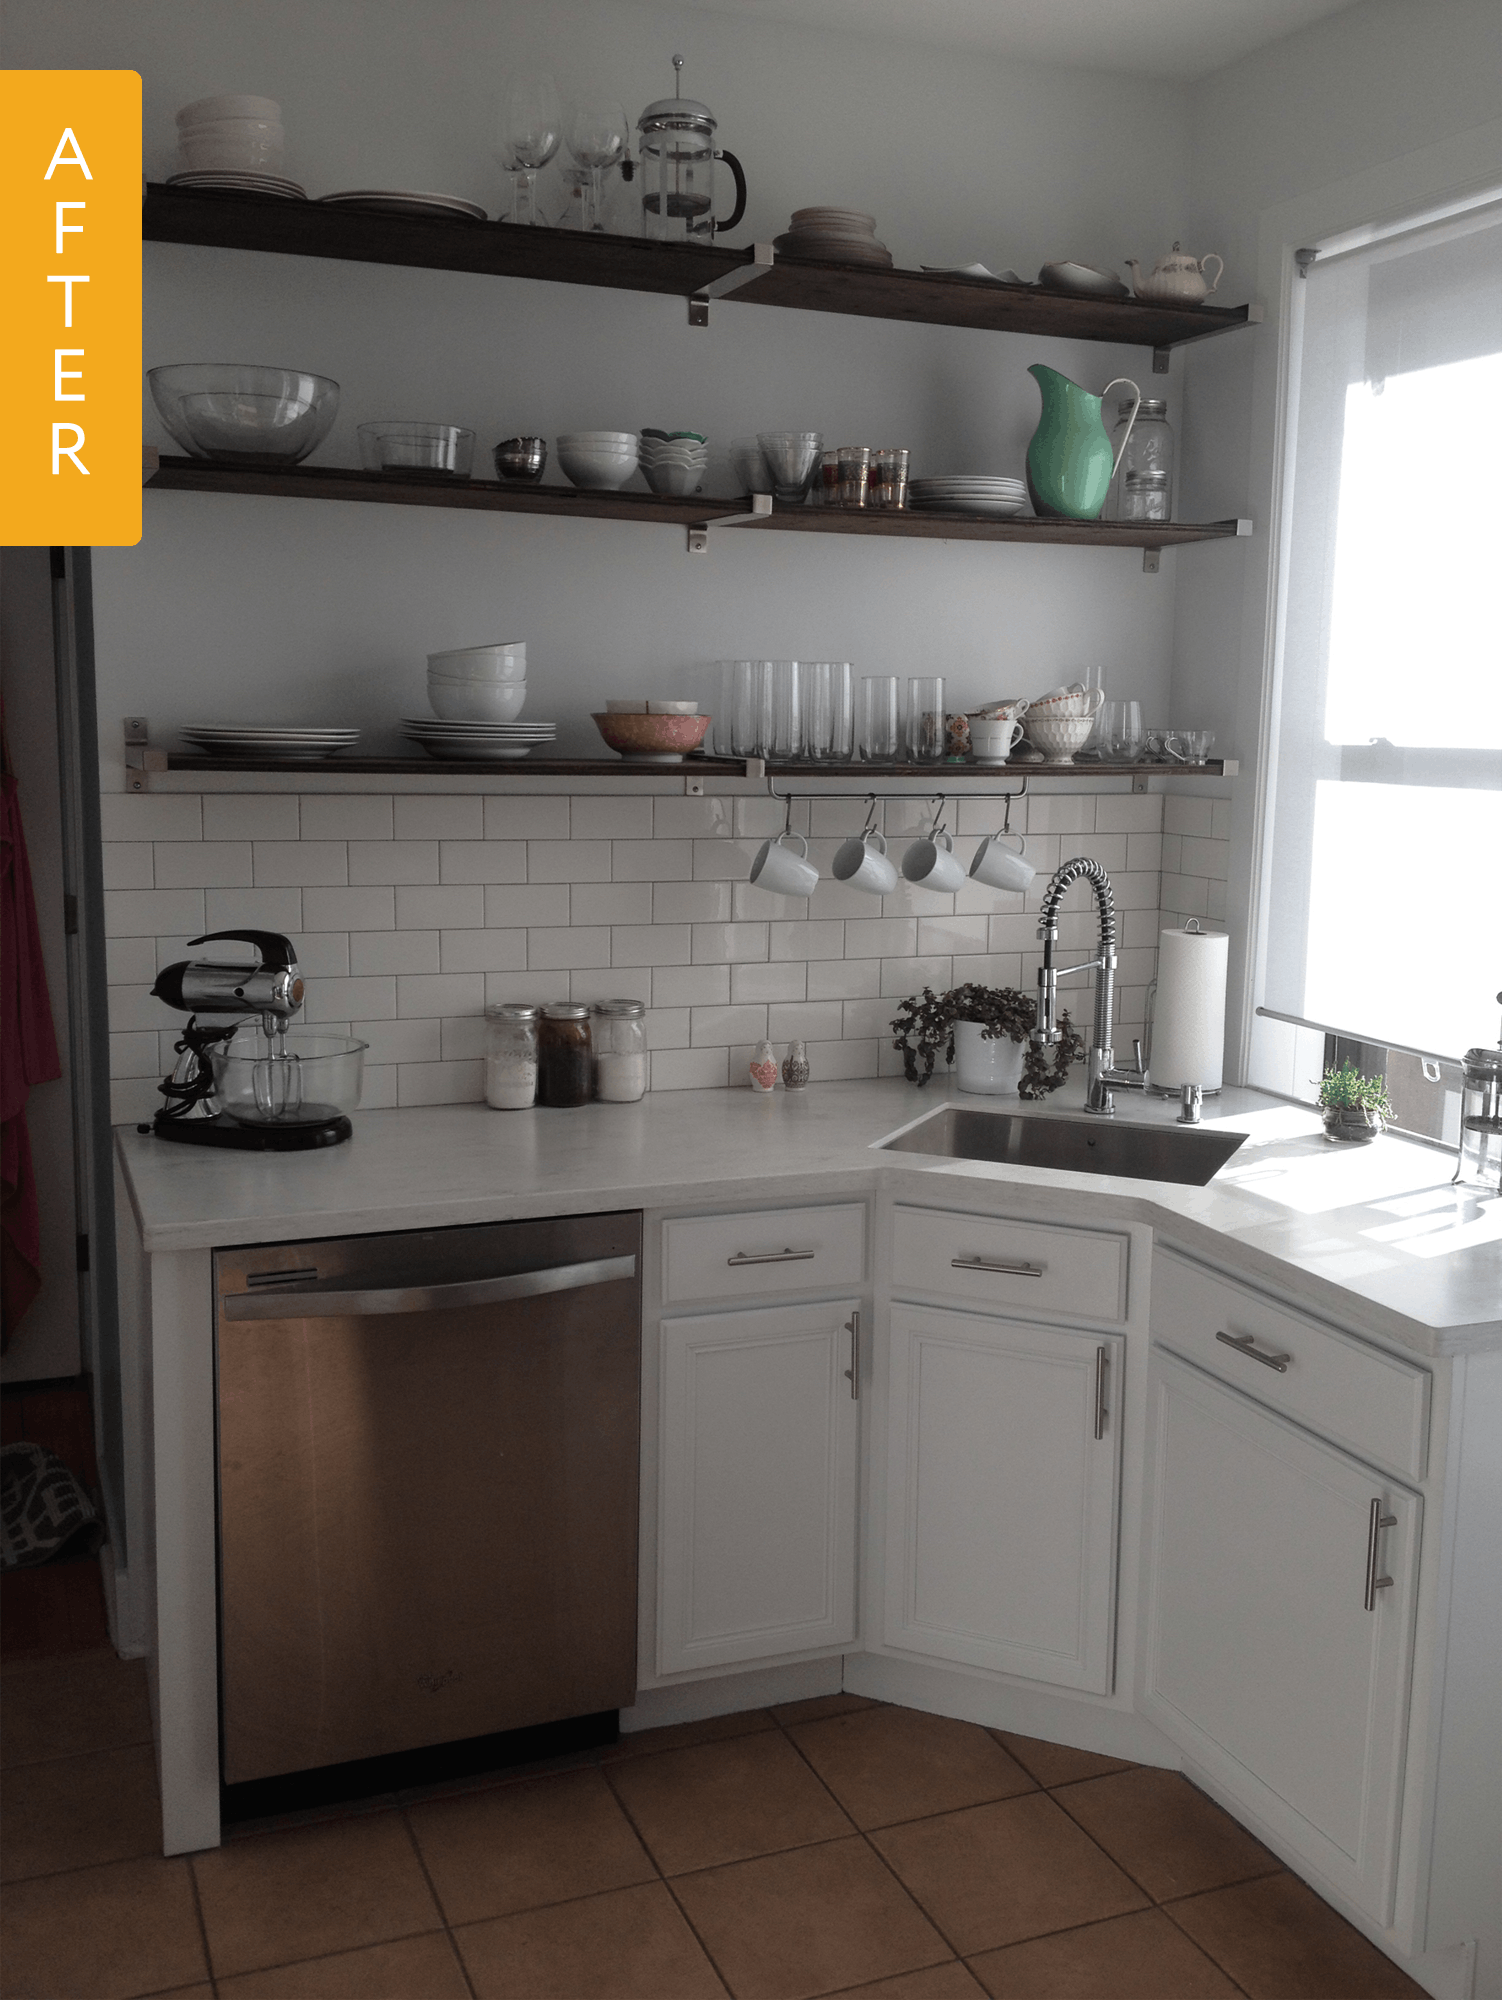 Before After A Tiny Kitchen Lightens Up With A 6 000 Remodel Kitchen Design Small Kitchen Remodel Small Kitchen Renovation